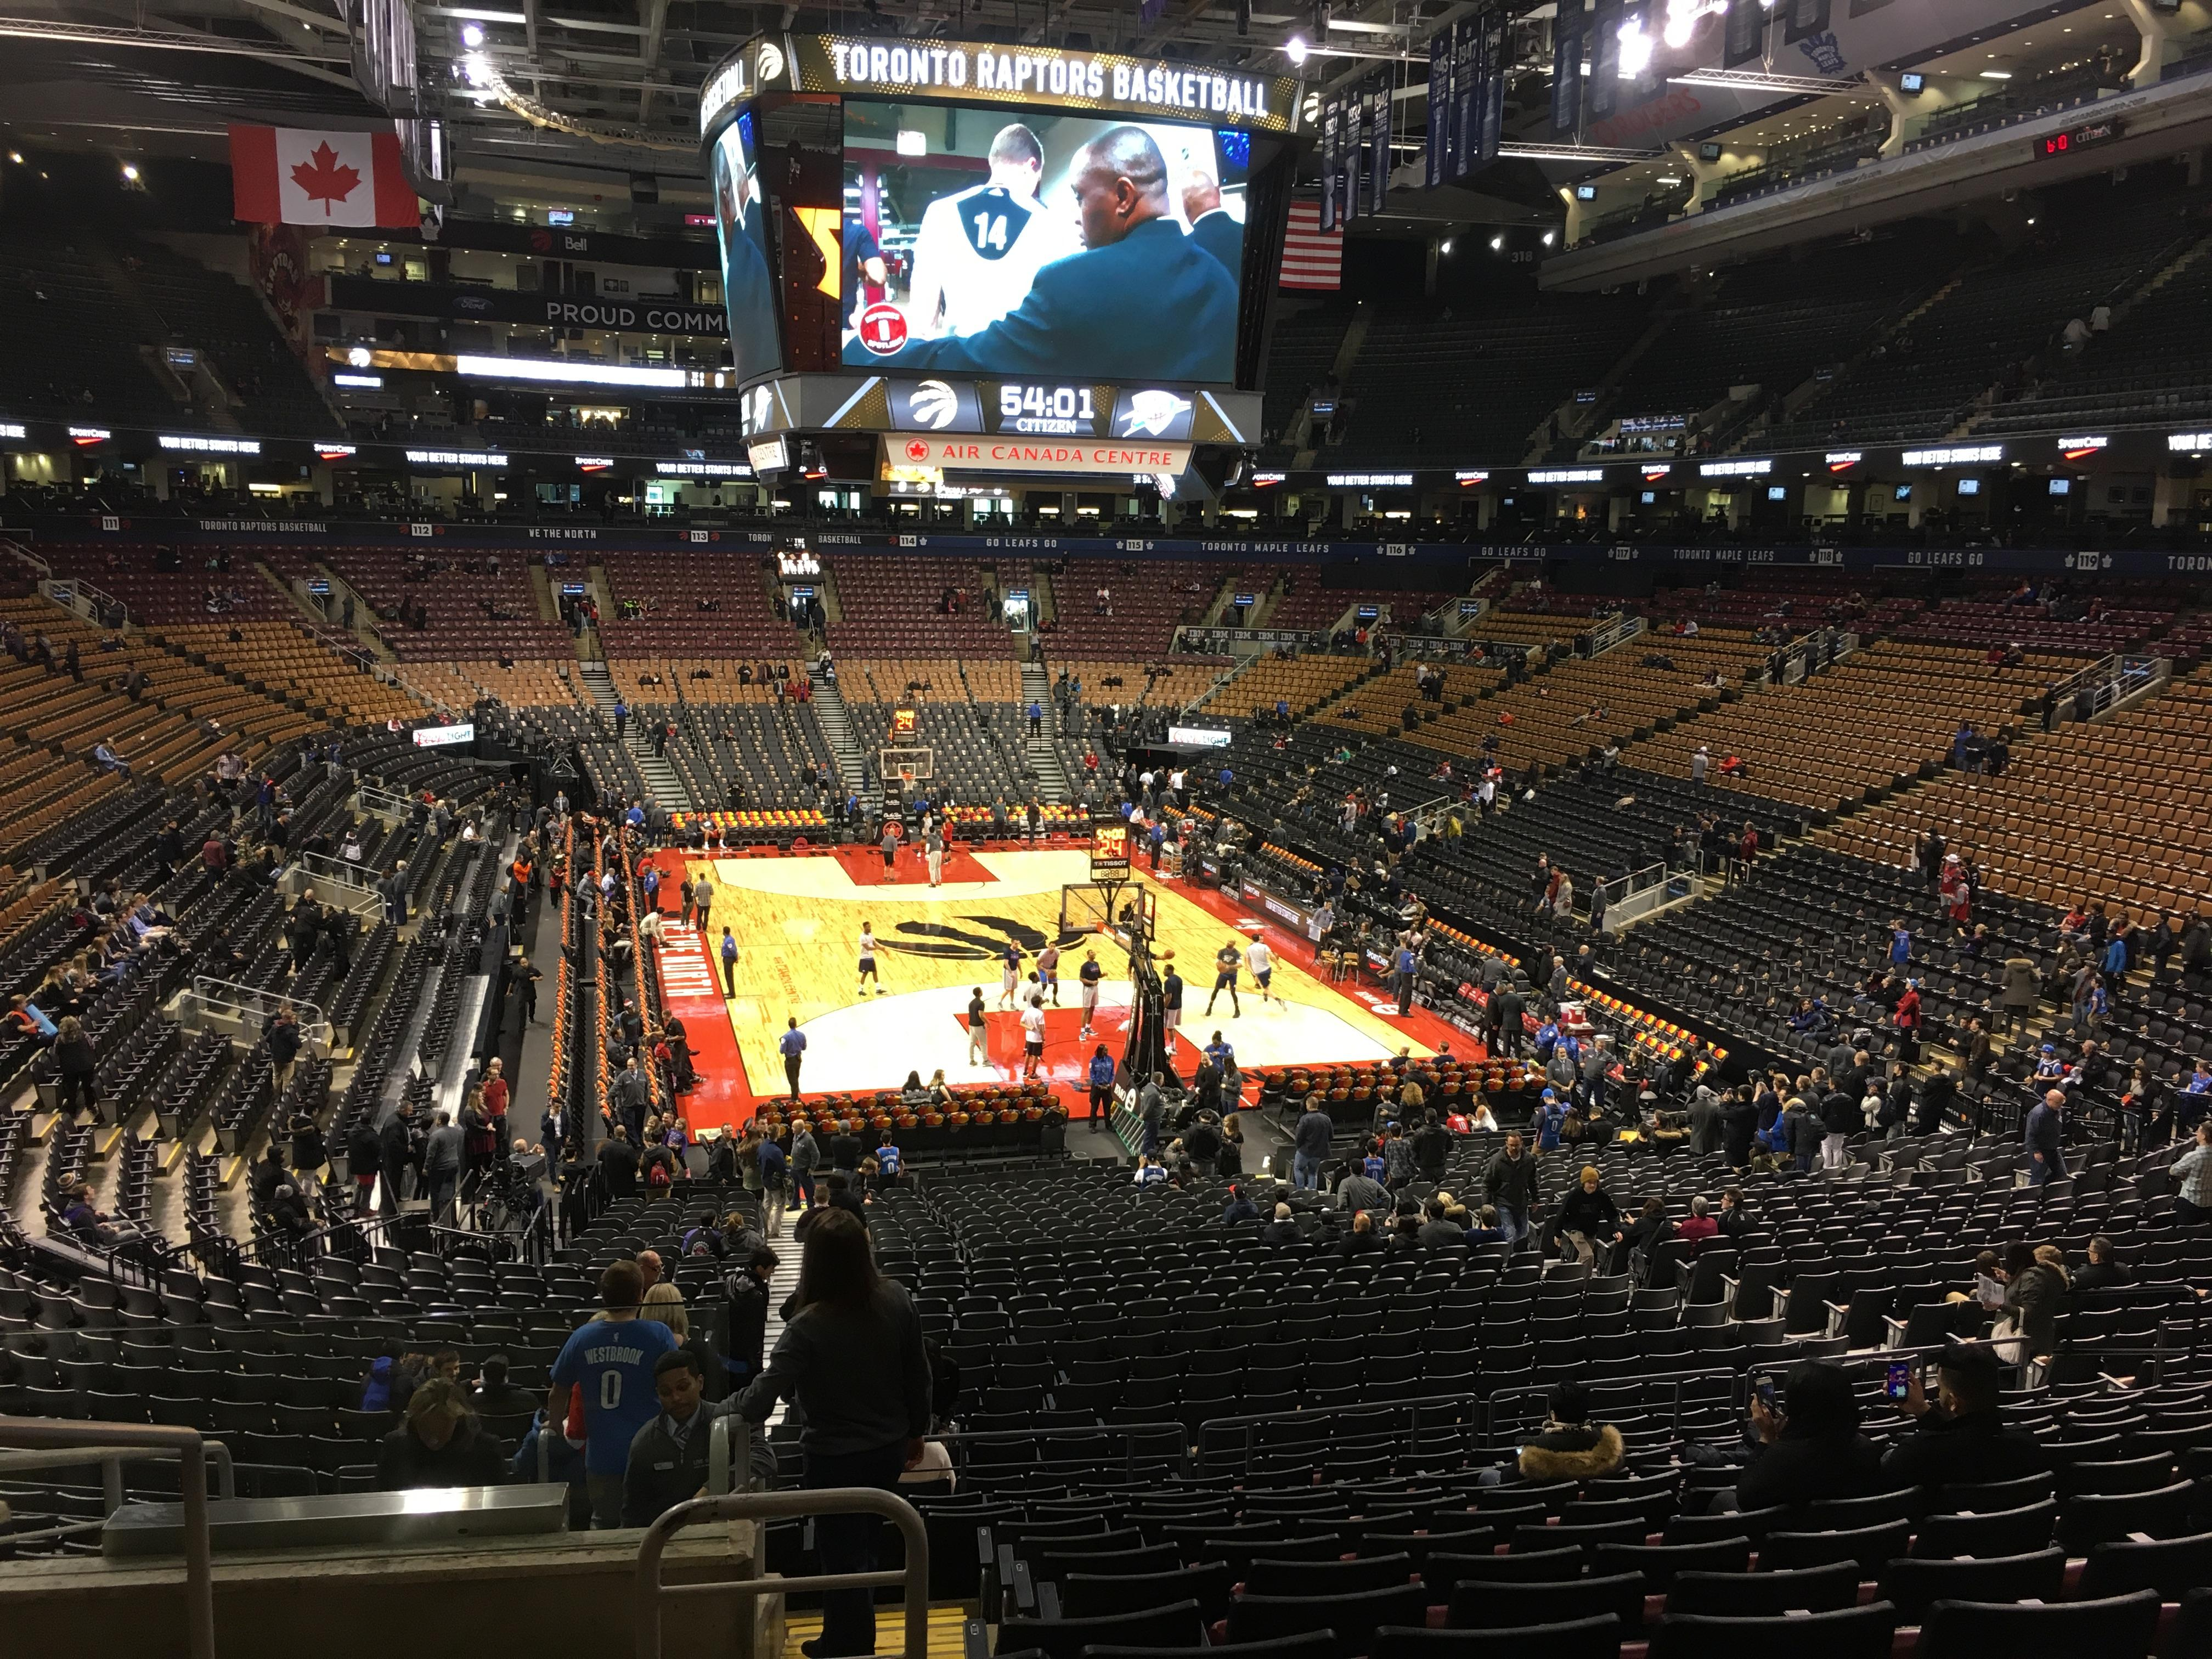 Scotiabank Arena Section 103 Row 30 Seat 20